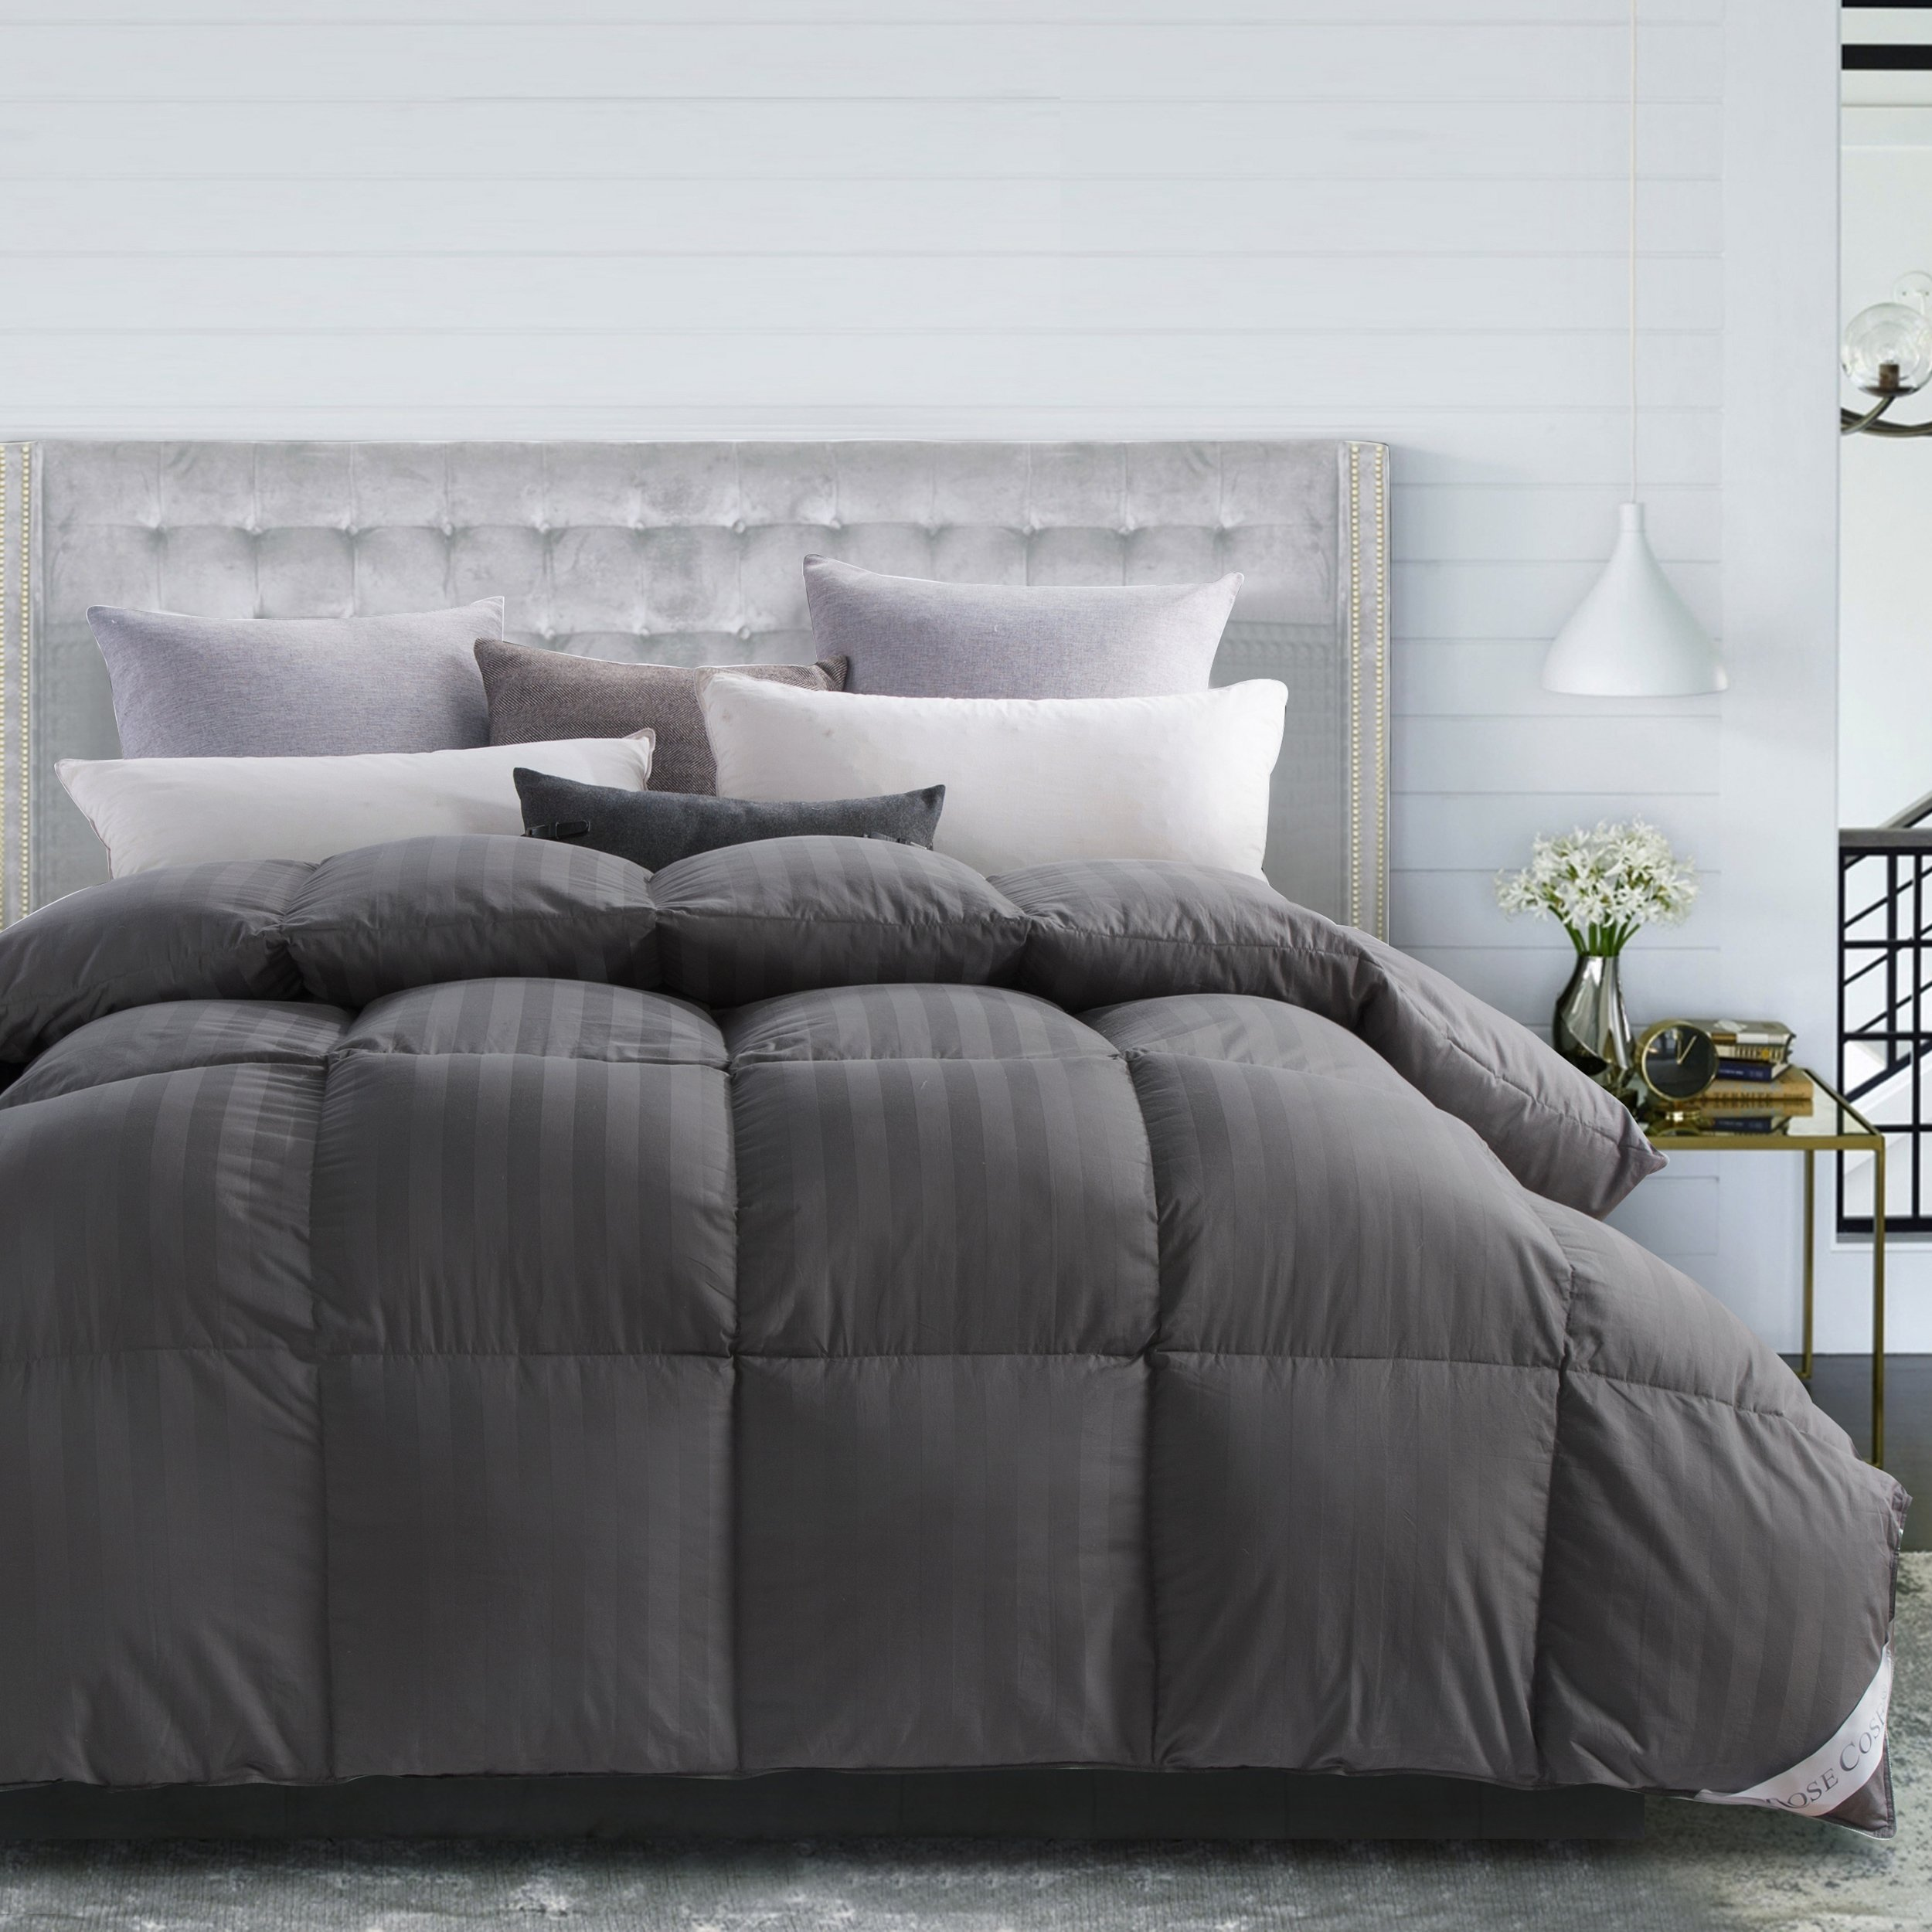 Rosecose Luxurious All Seasons Goose Down Comforter King